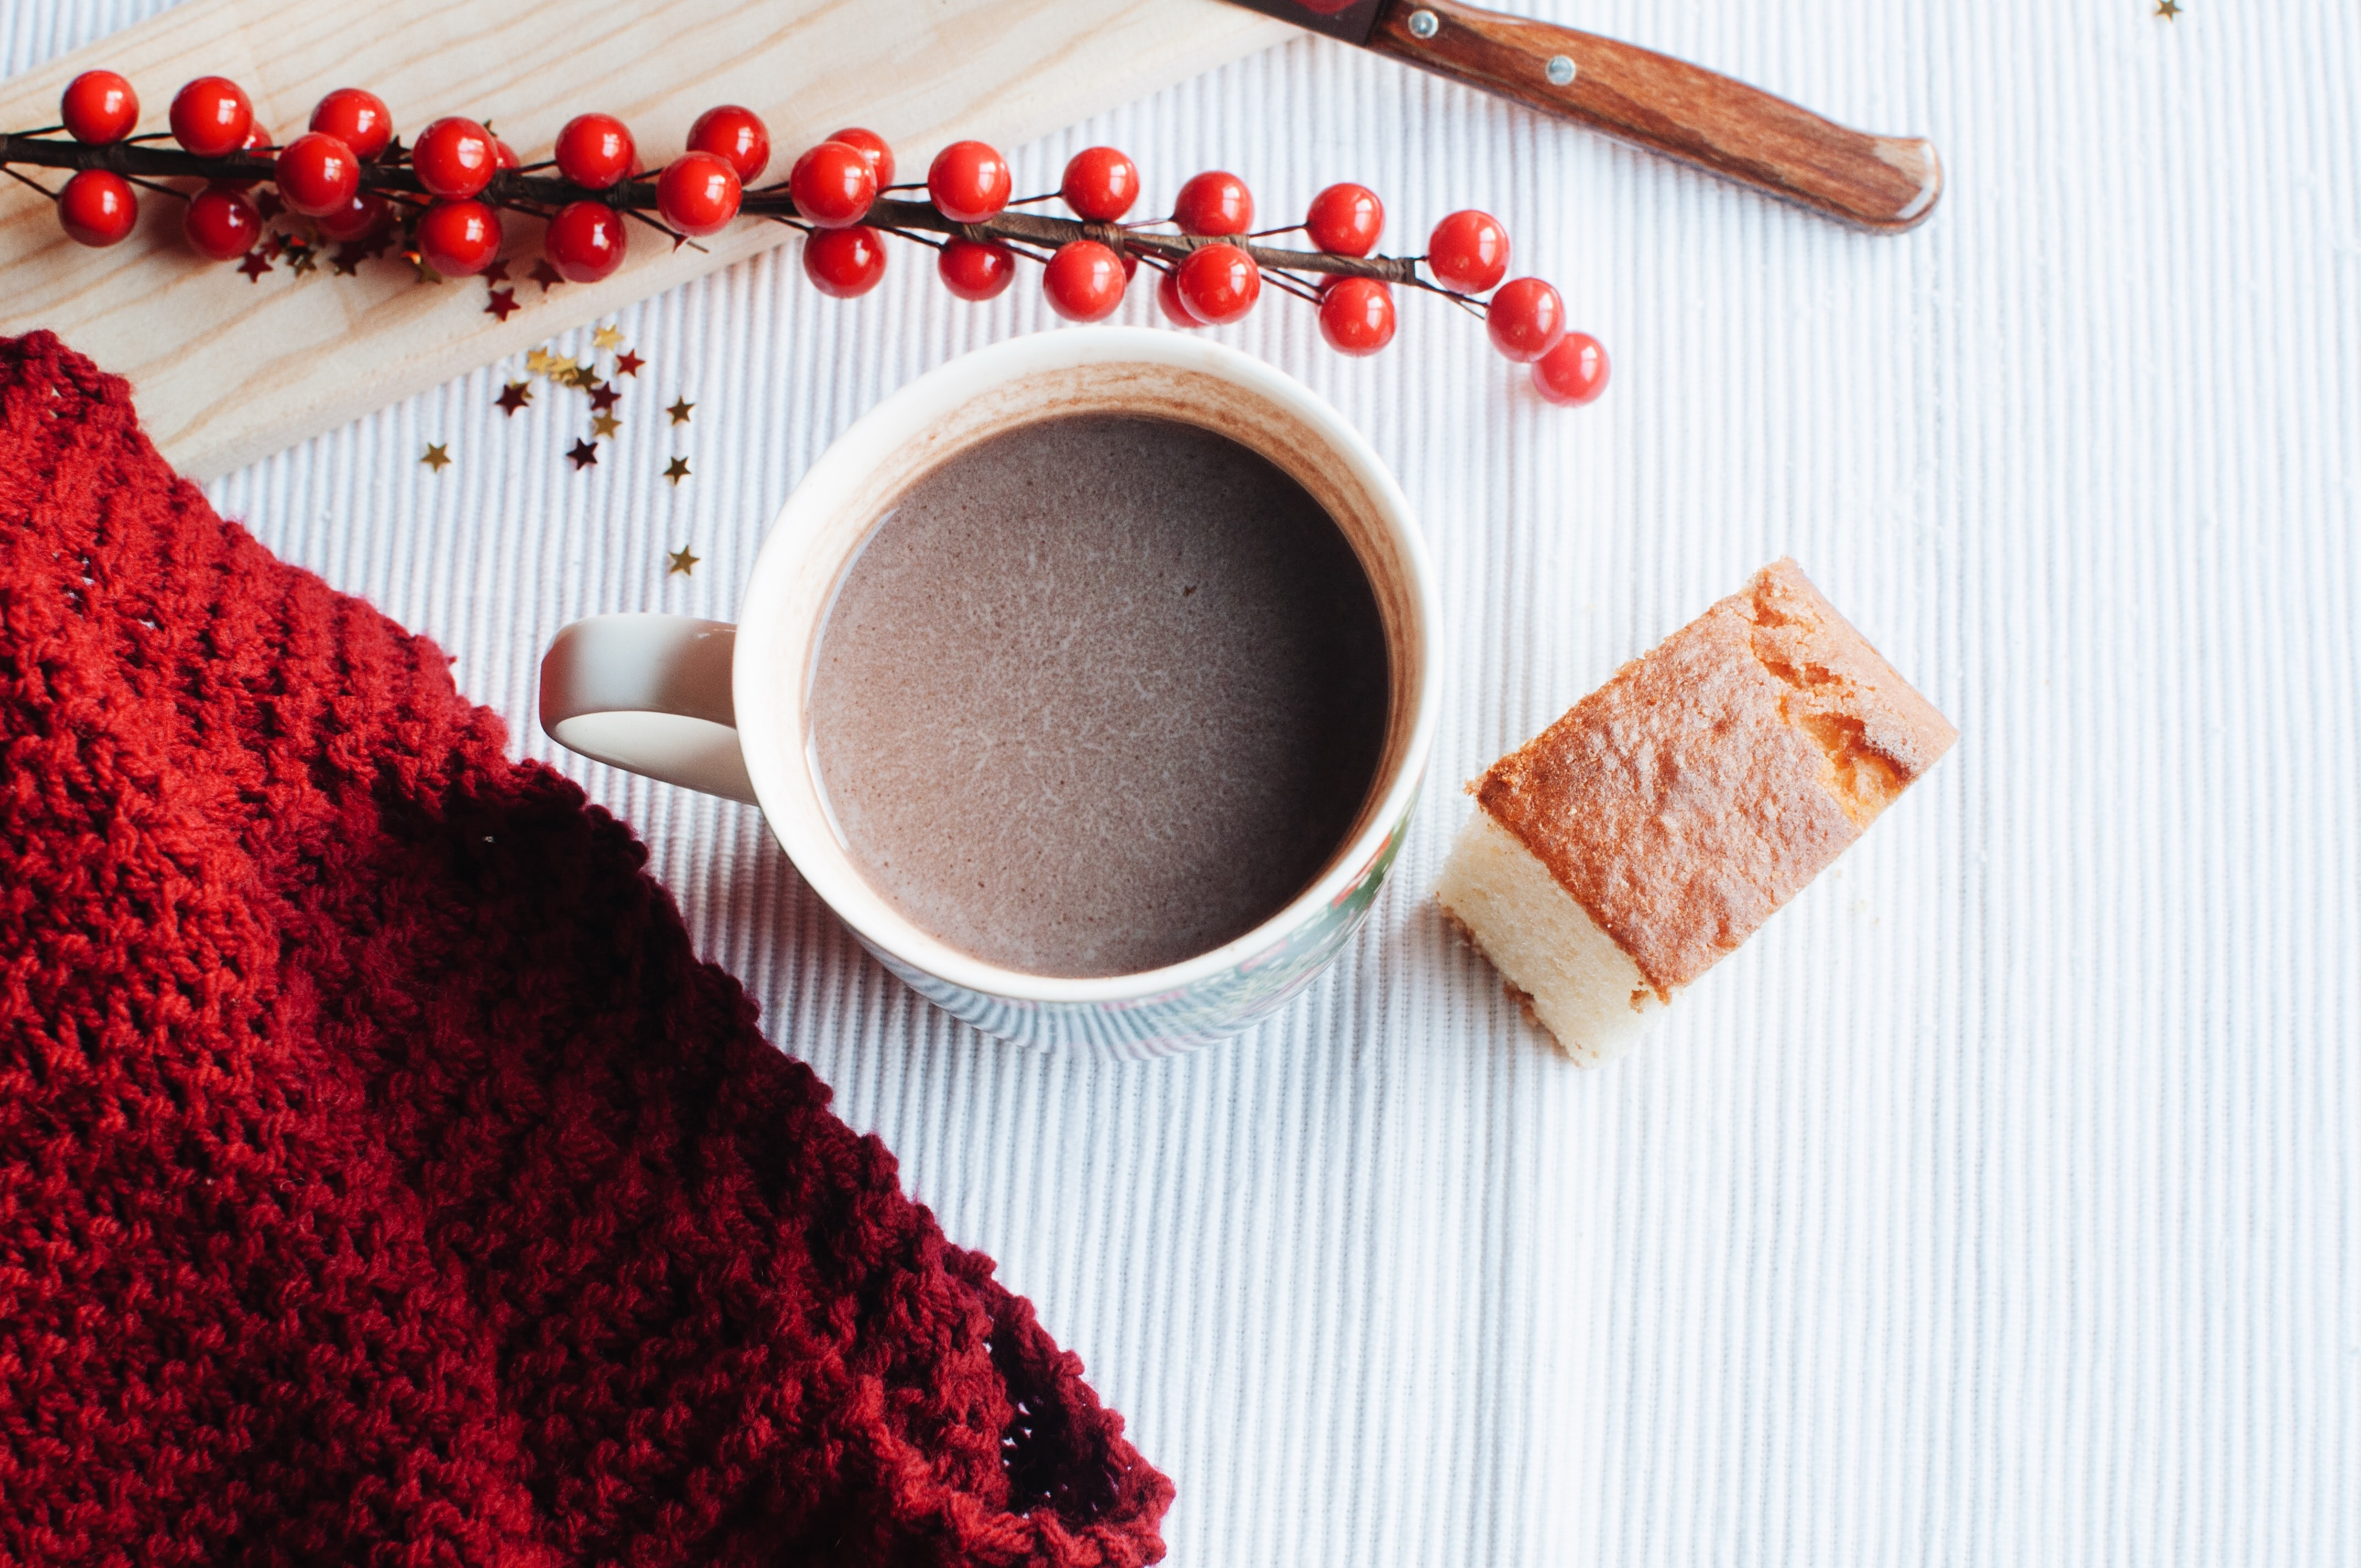 flat lay photo of a cup of coffee and slice cake